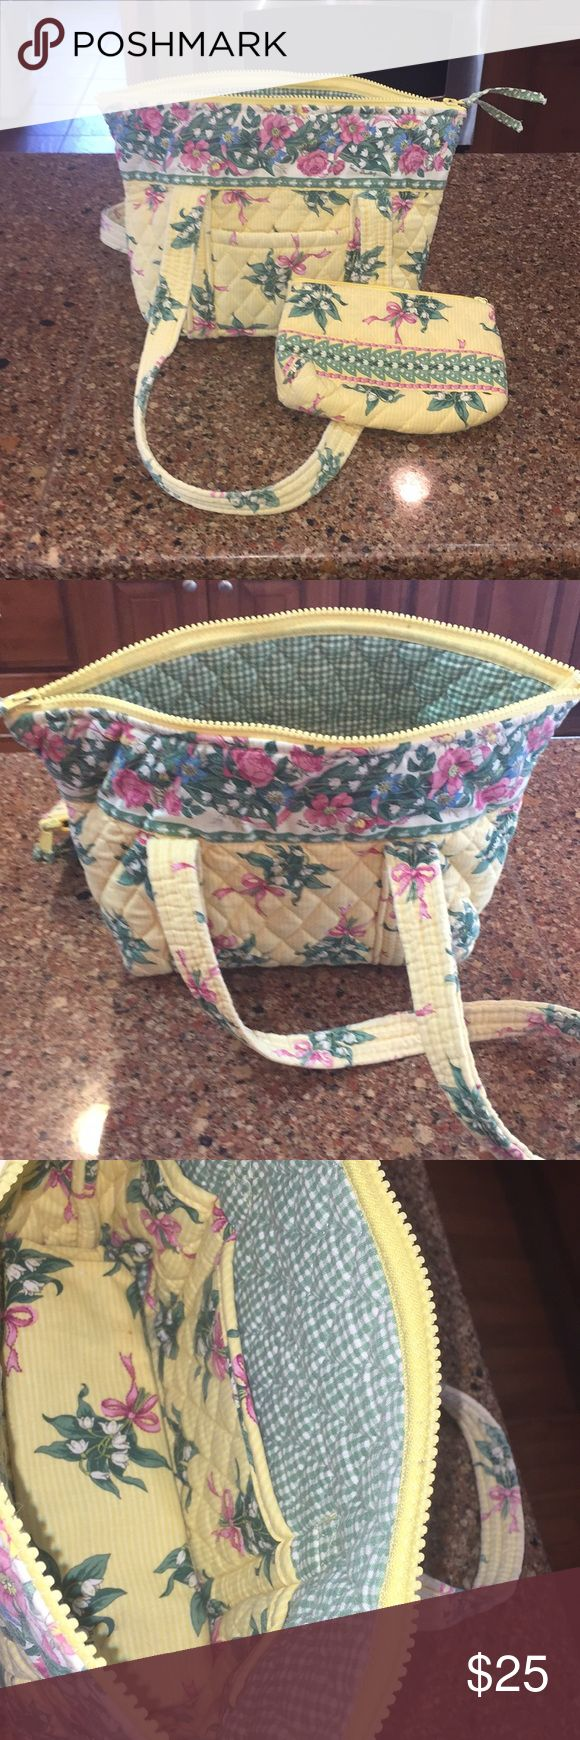 "VERA BRADLEY SHOULDER BAG/COIN PURSE Gently used yellow/multi colored shoulder bag and zippered coin purse 👛  12""L X 9""H X 4""D 12"" strap drop  Exterior has slip pocket  Interior has 6 slip pockets  Zippered closure  😊😊😊😊😊😊 Vera Bradley Bags"